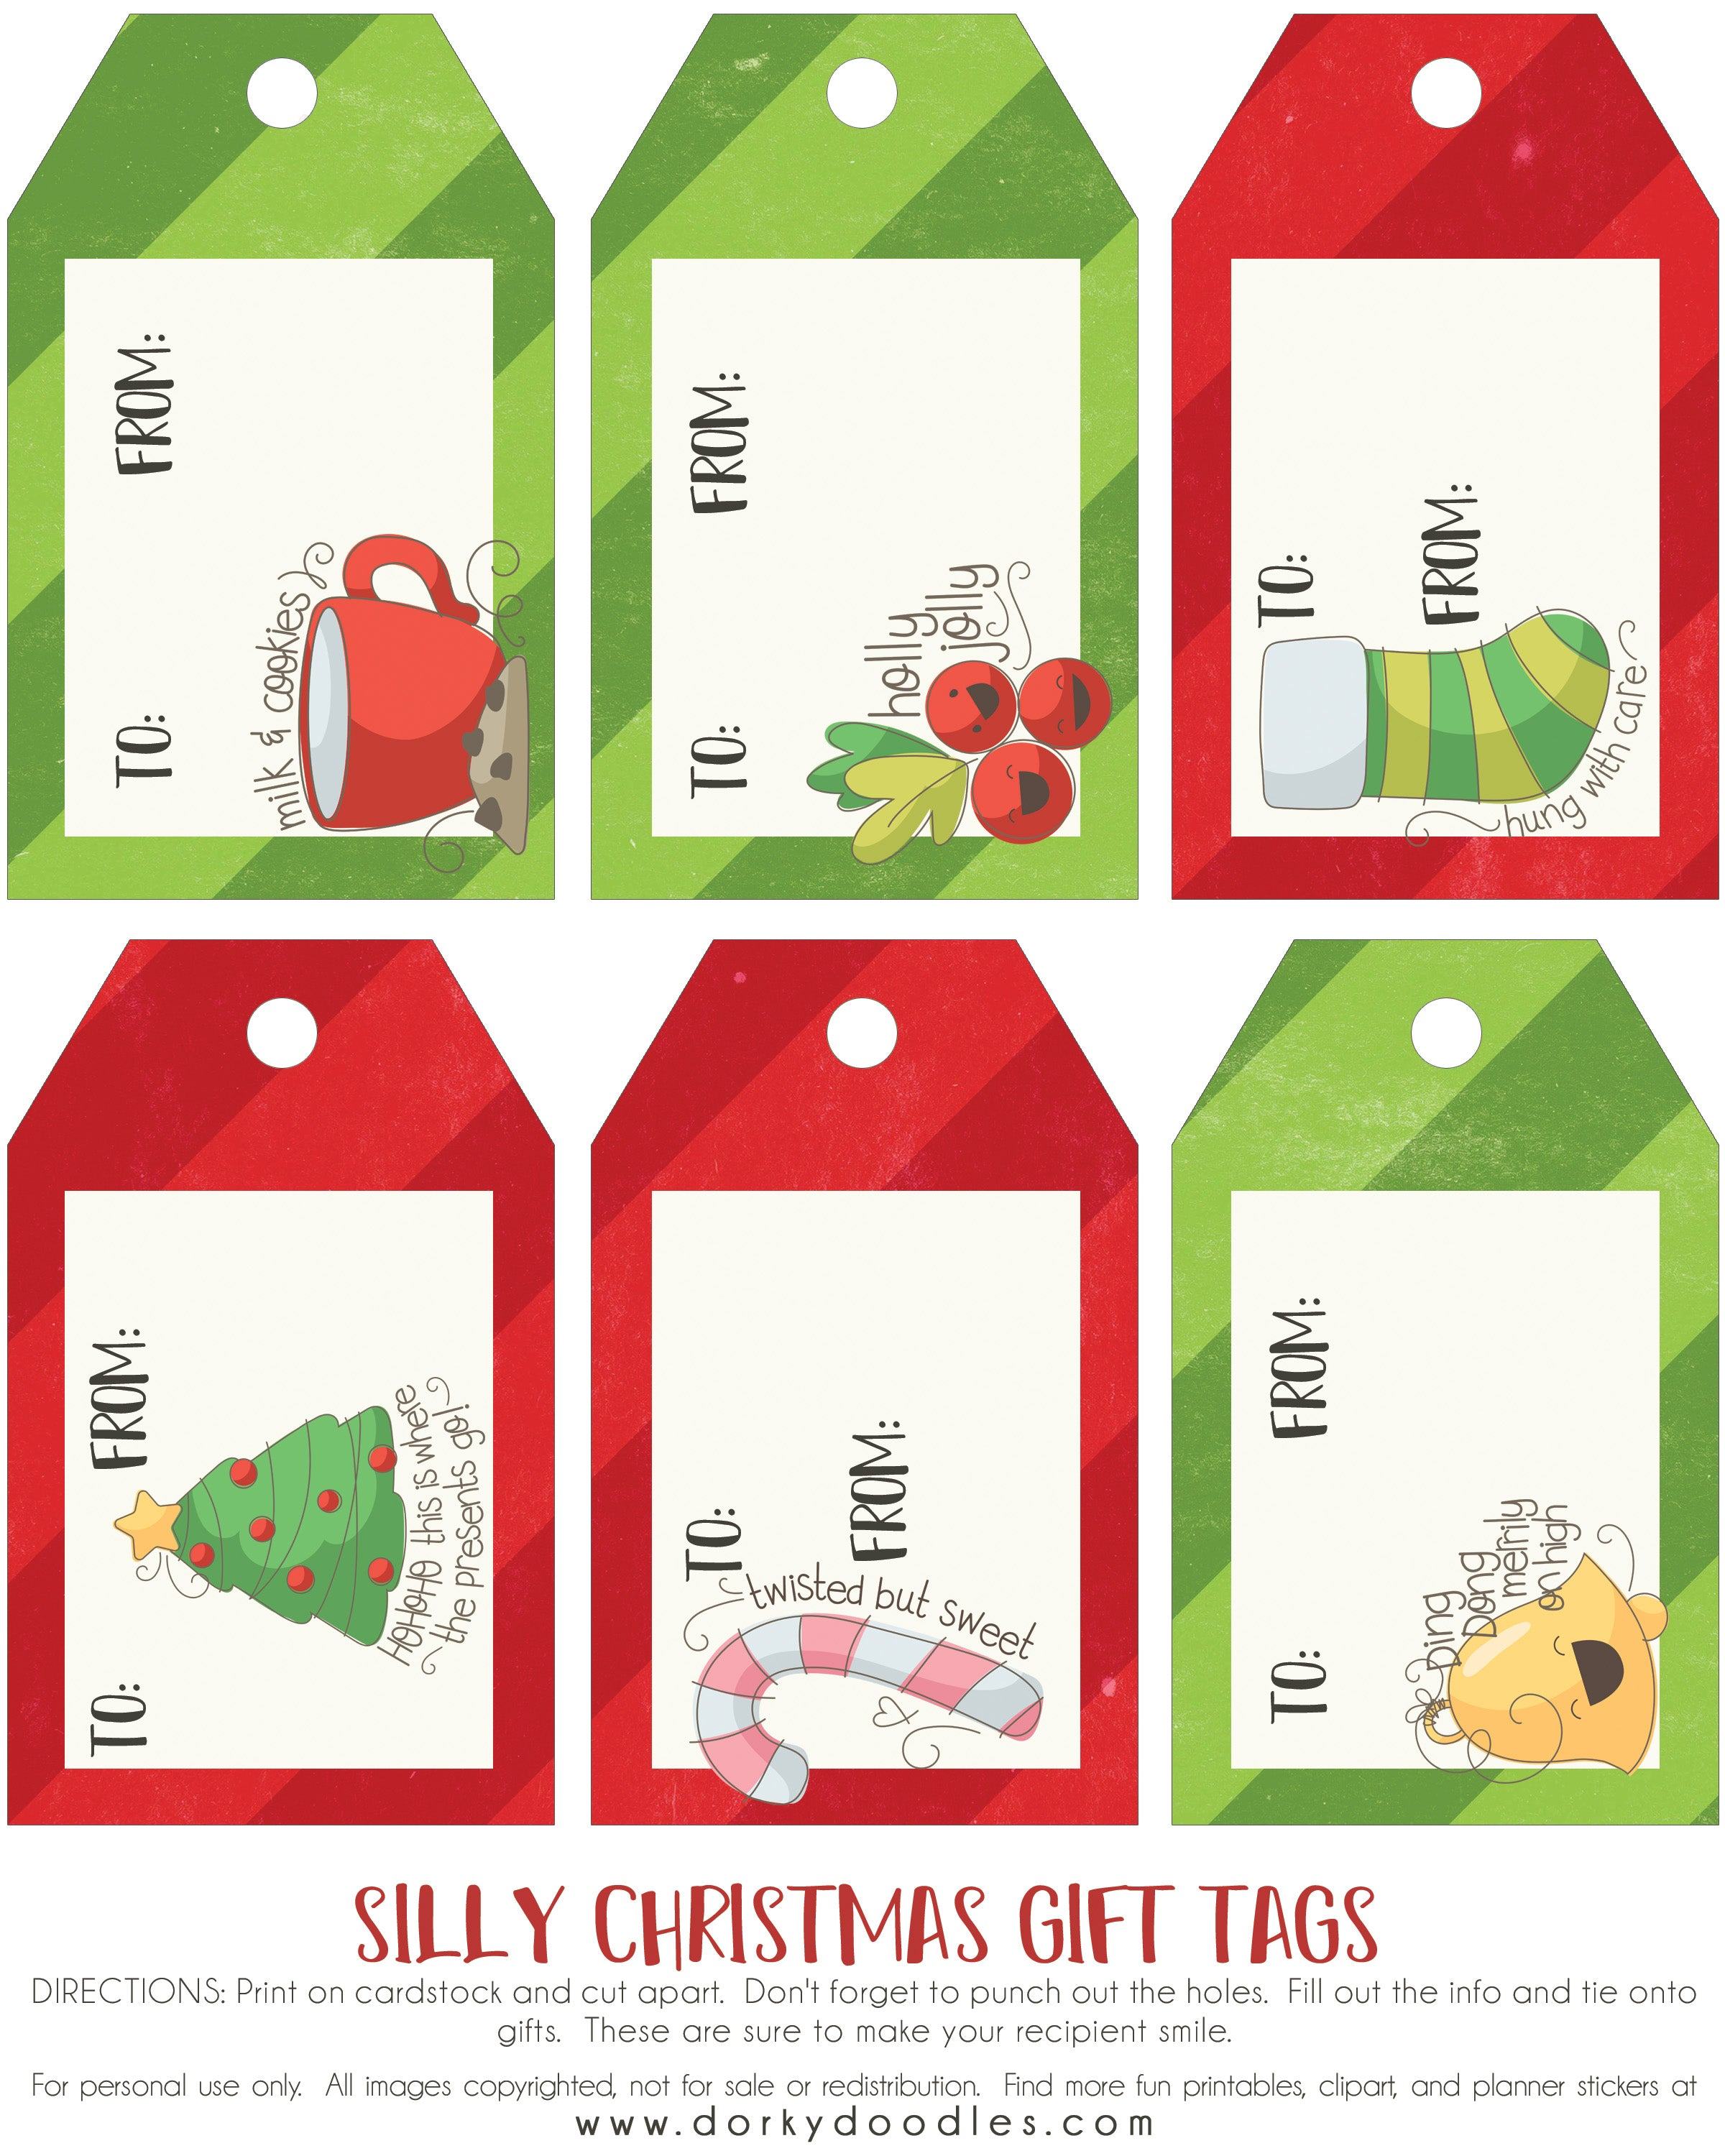 photograph about Printable Cardstock Tags called No cost Printable Xmas Tags Dorky Doodles